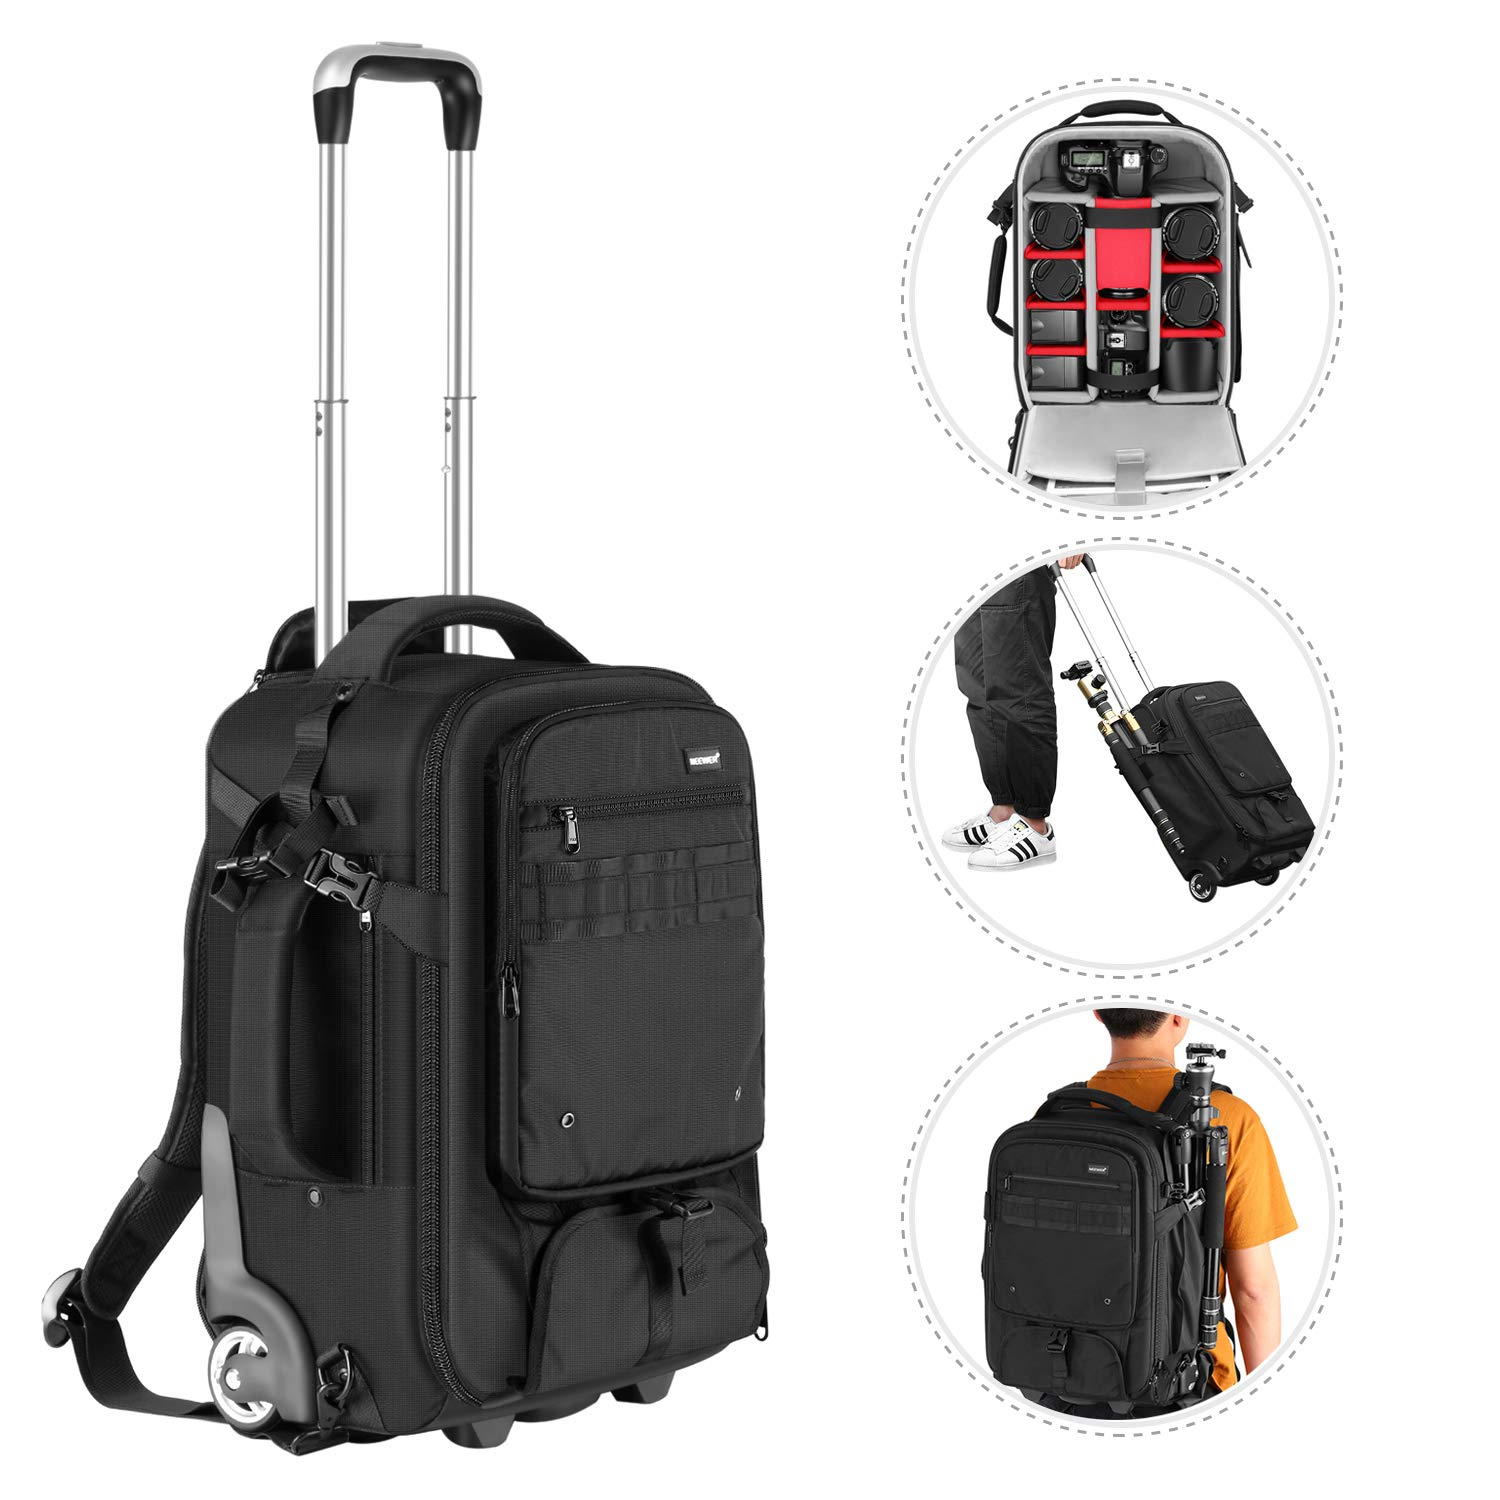 Neewer 2-in-1 Rolling Camera Backpack Trolley Case with Side Handle- Anti-Shock Detachable Padded Compartment, Hidden Pull Bar, Durable, Waterproof for Camera,Tripod,Flash Light,Lens,Laptop(Black)